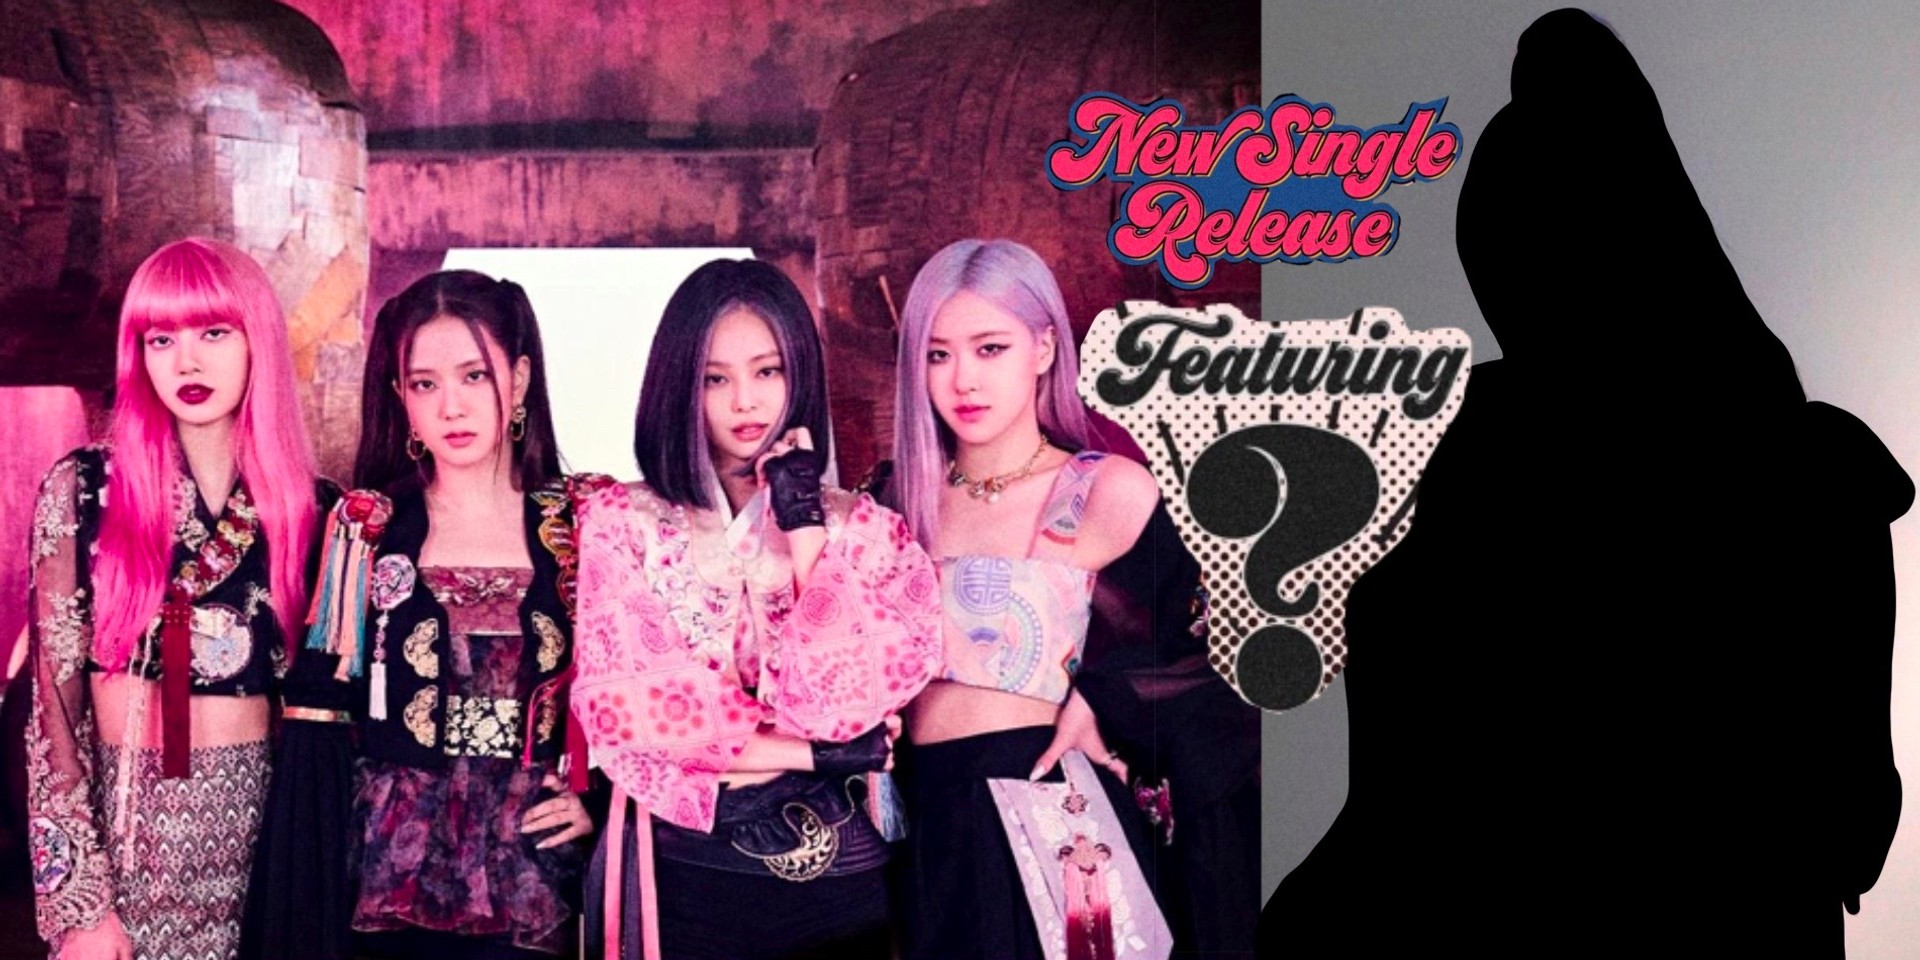 Blackpink hints at collaborative single with mystery guest